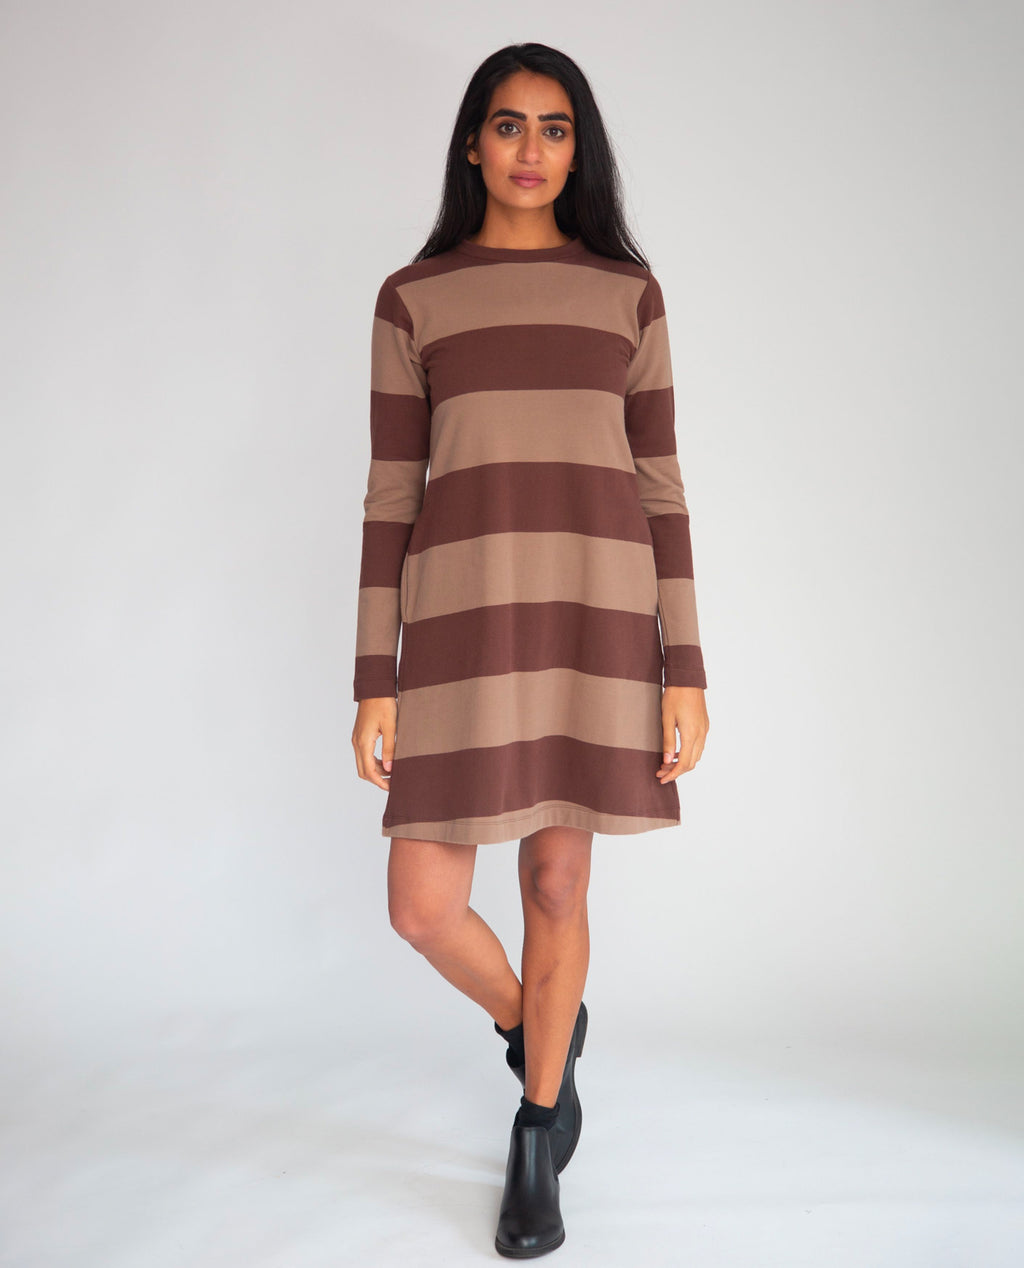 Vicky-Sue Organic Cotton Dress In Chocolate & Mocha